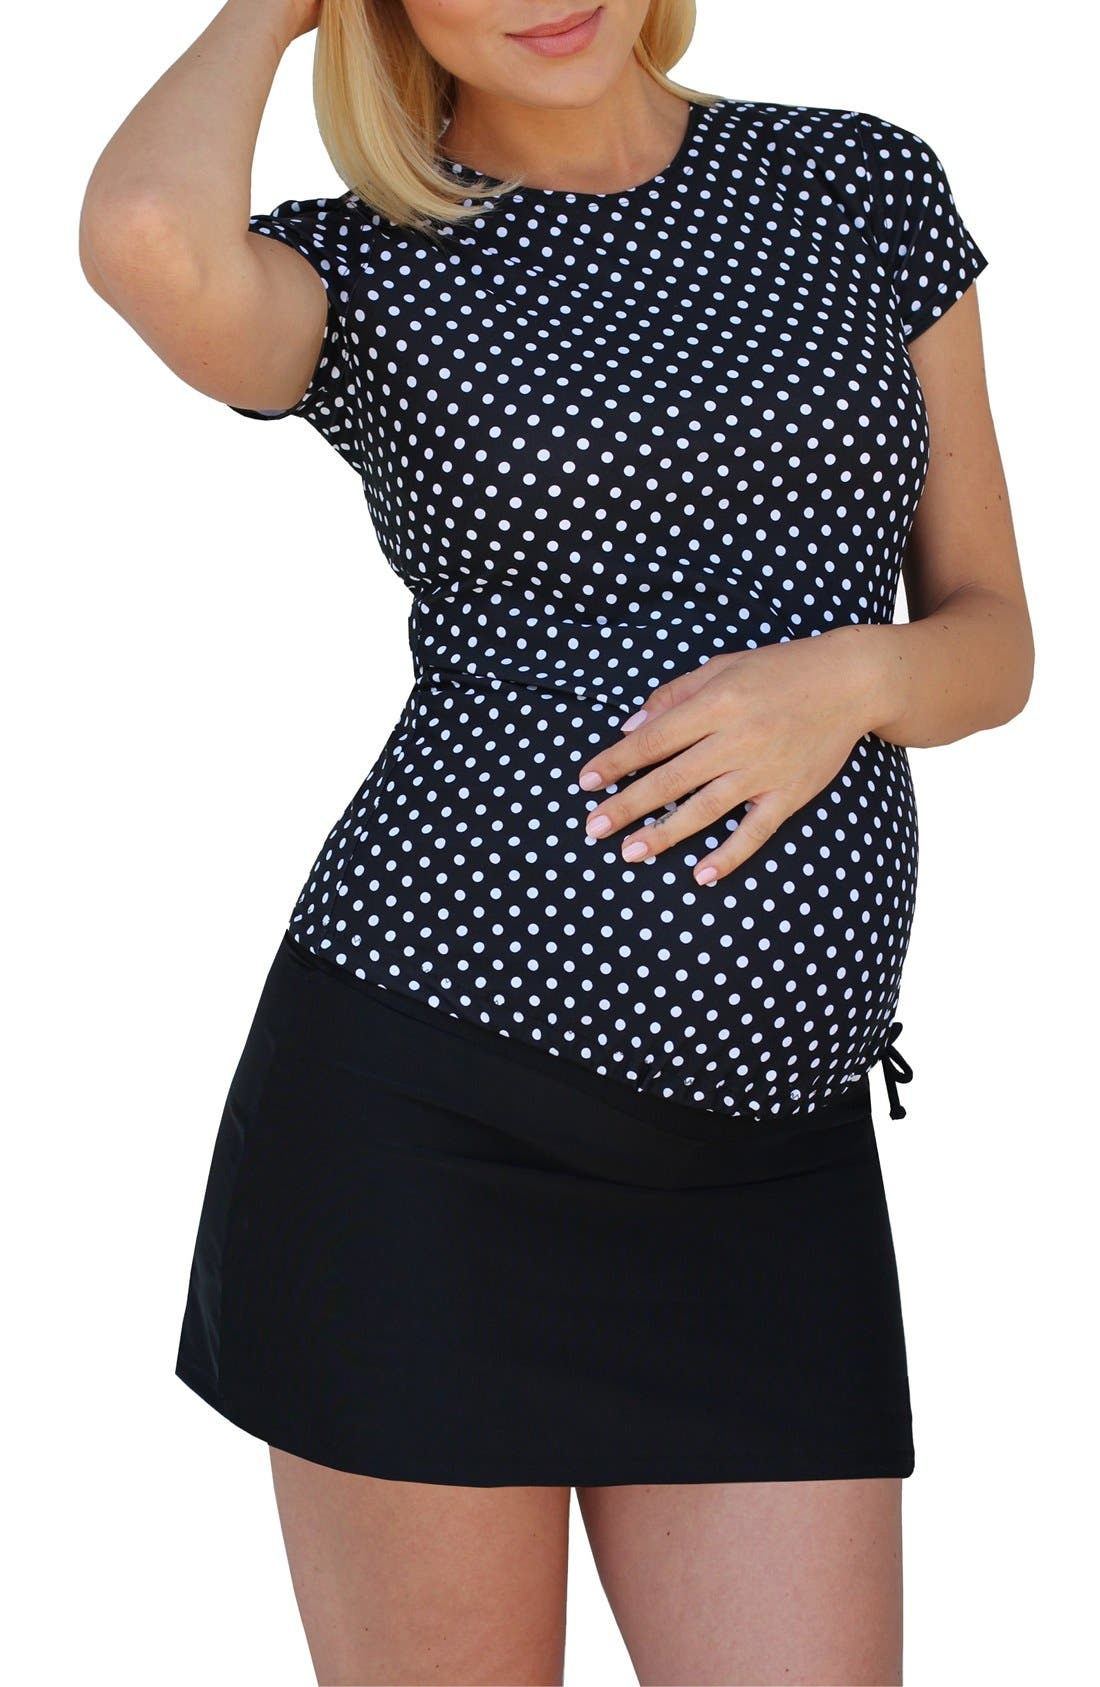 Shop for Maternity at membhobbdownload-zy.ga Eligible for free shipping and free returns.